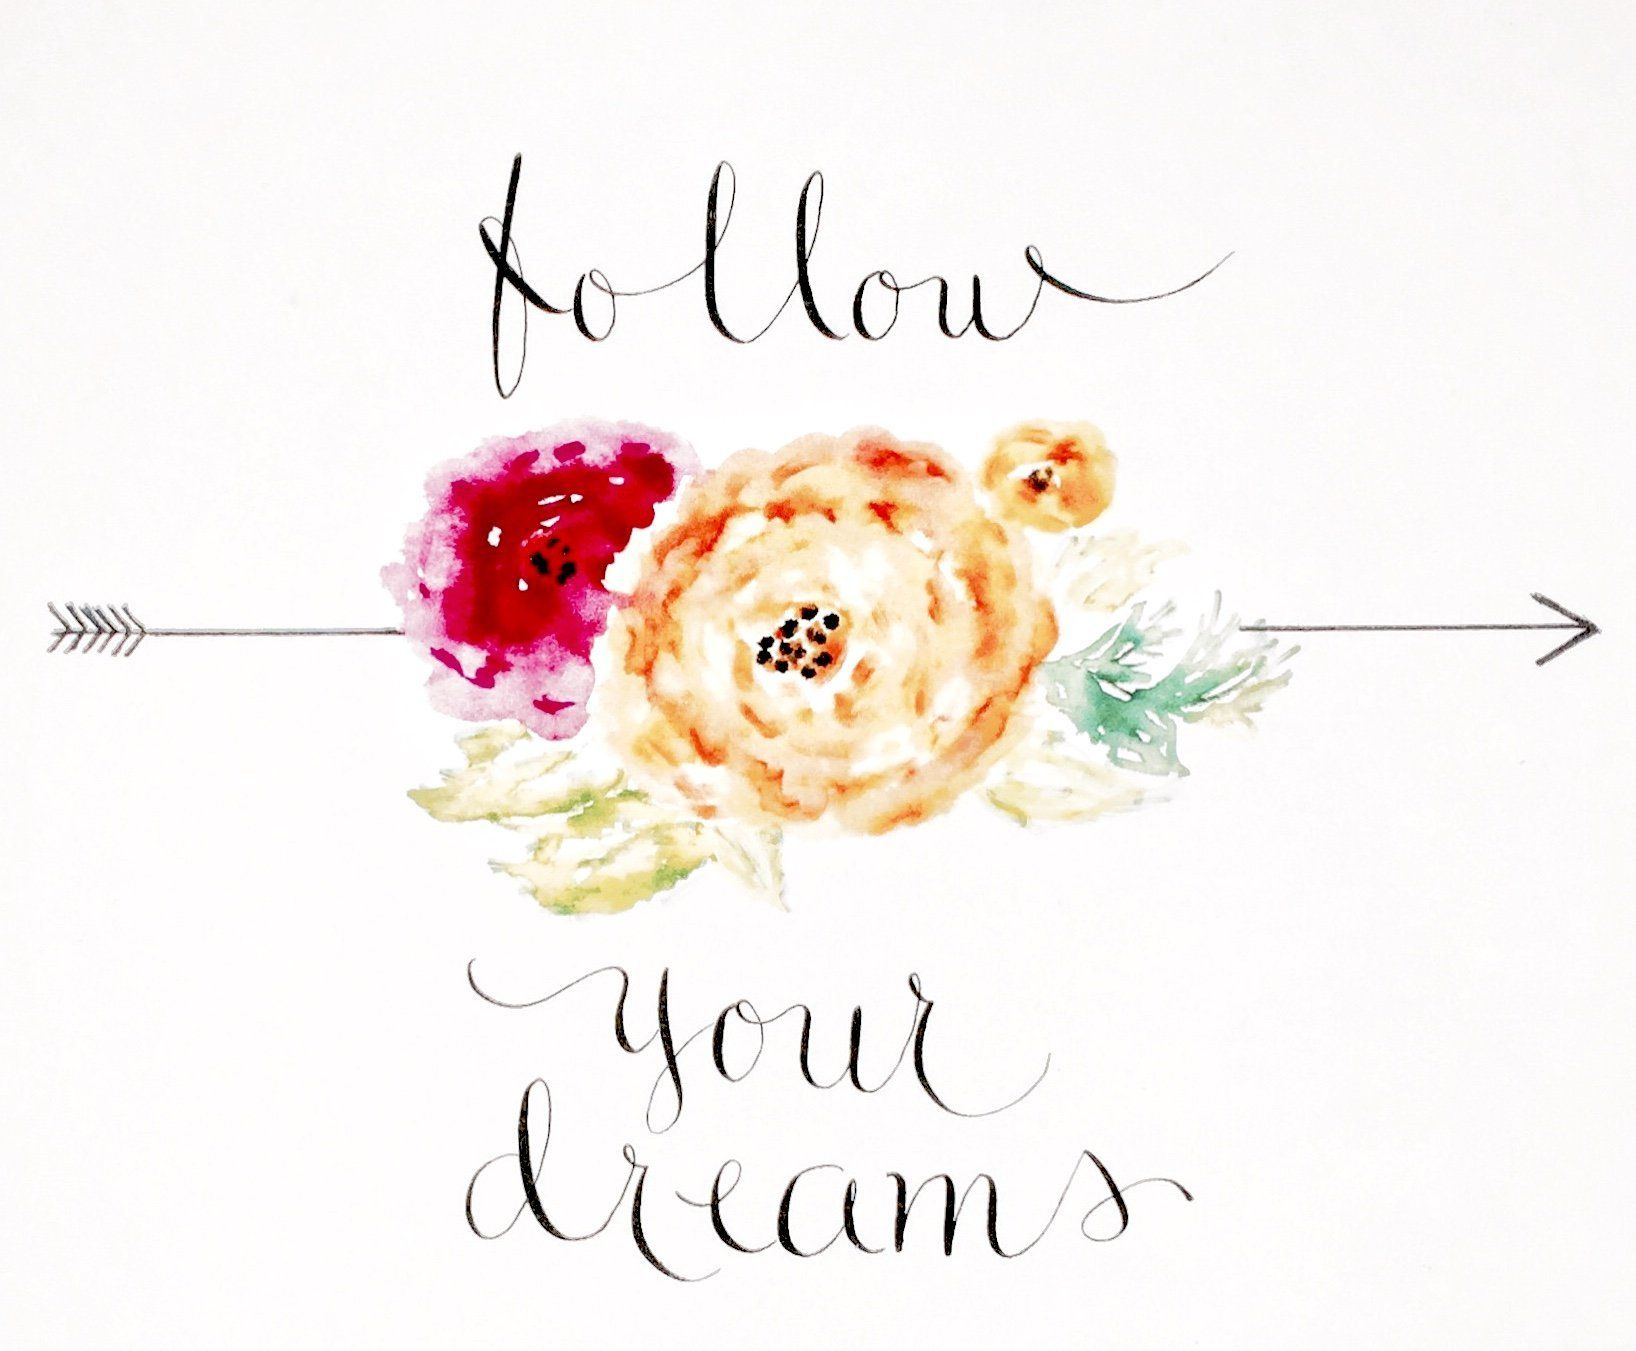 Follow Your Dreams. Hand designed, watercolor and calligraphy. Follow your dreams, a reproduction of the original. Printed on 100# archival paper. Measures 8.5 x 10.